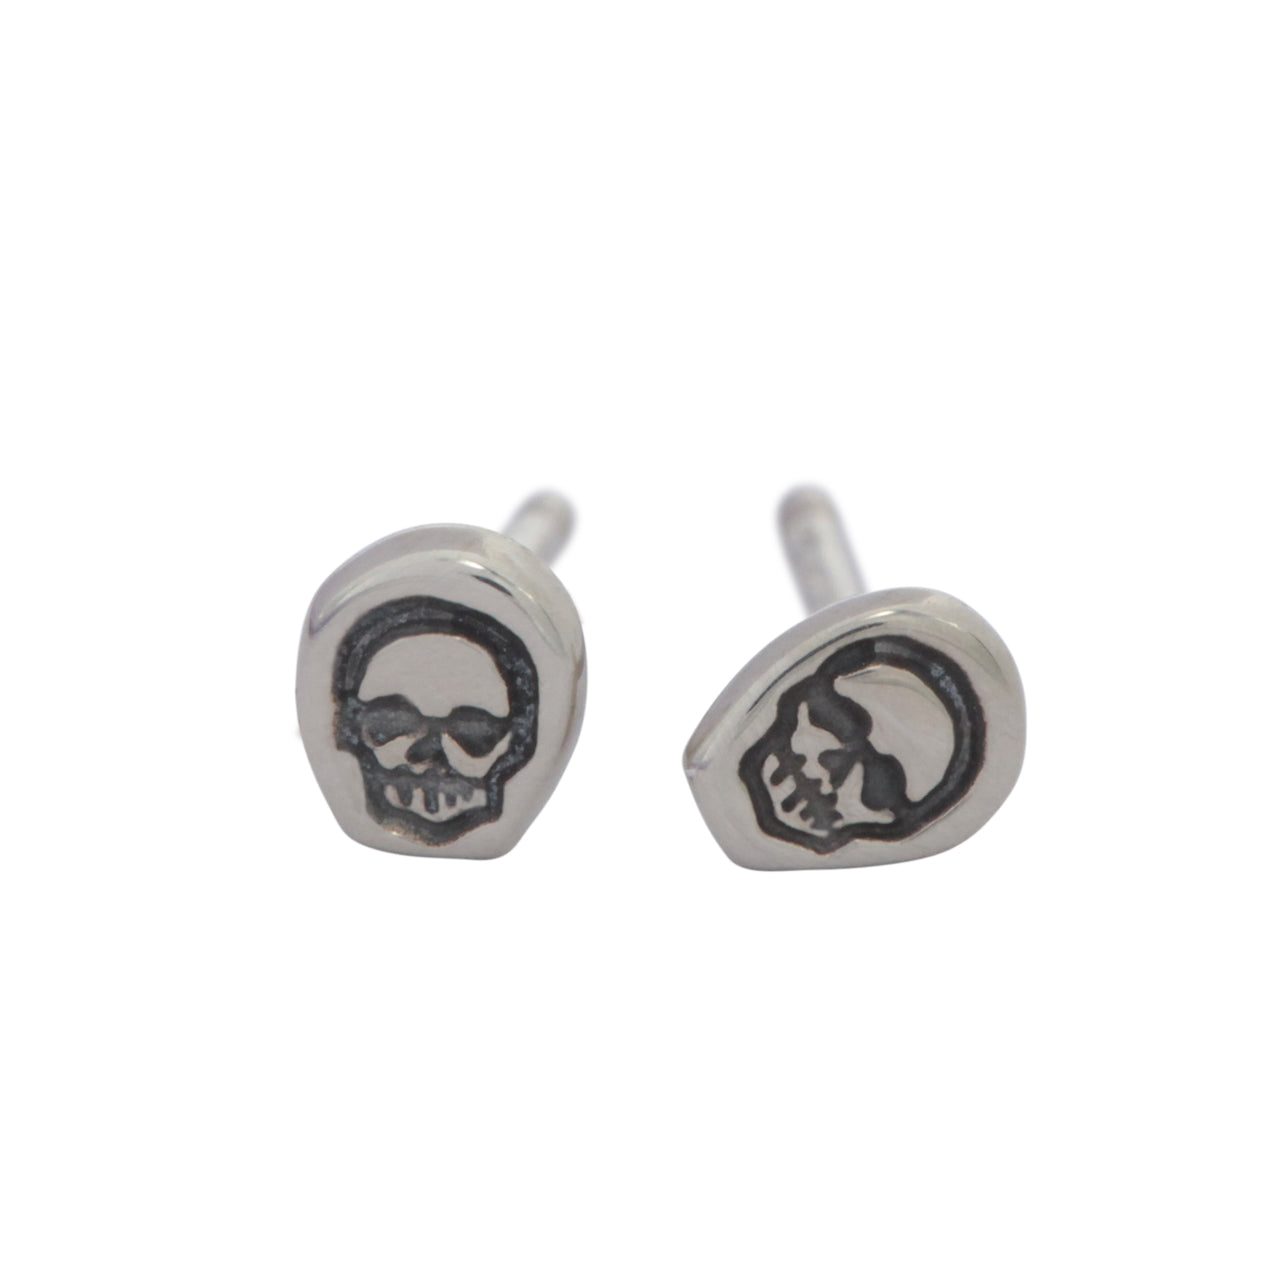 Teensy Skull Earrings